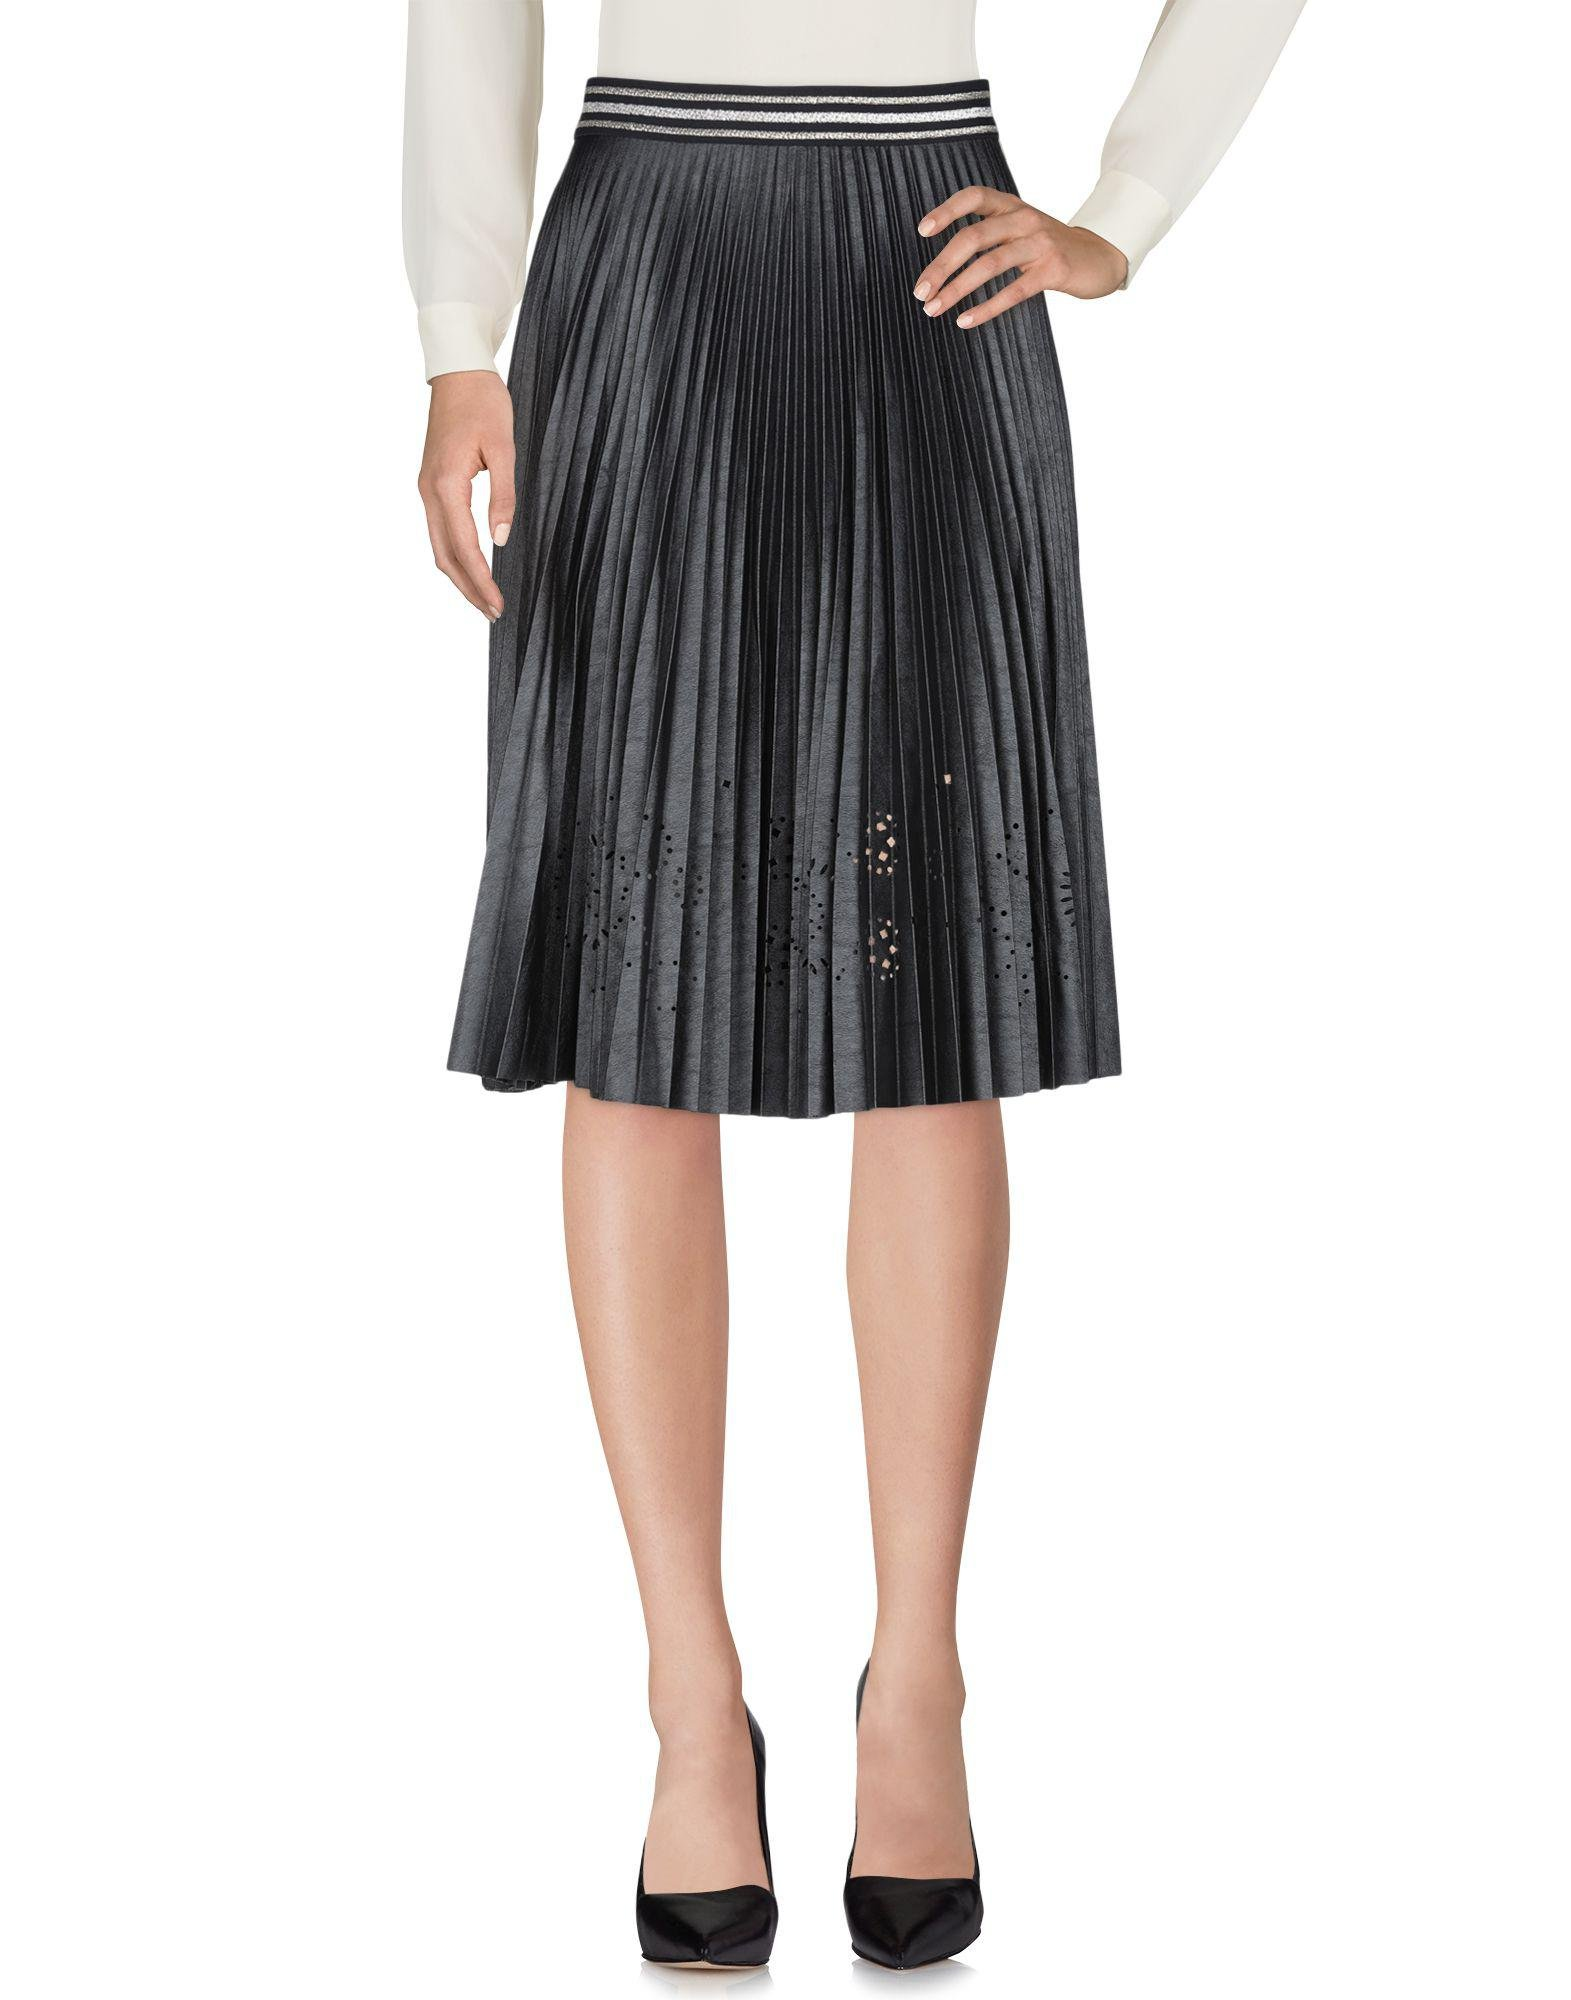 SKIRTS - Knee length skirts Beatrice. B Professional Online vn31dzfO